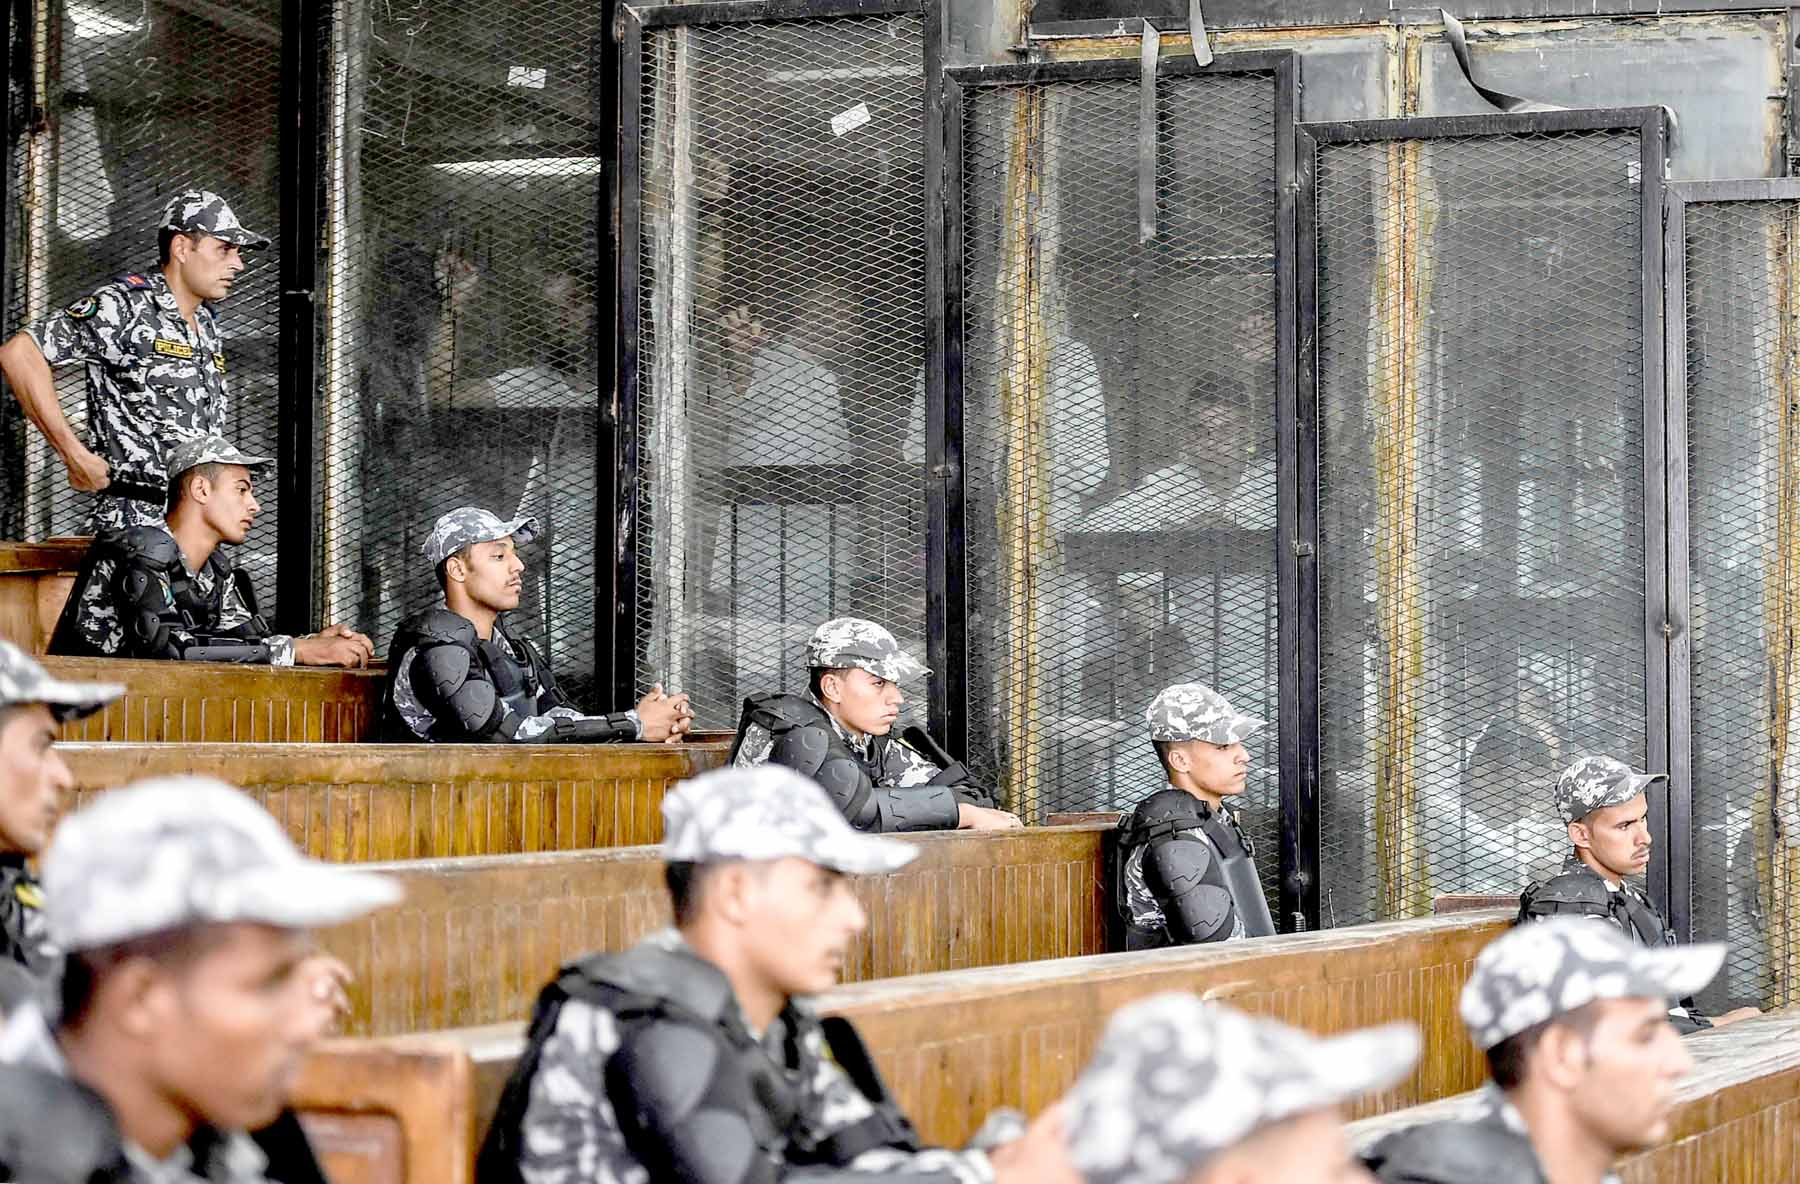 Maintained pressure. Members of Egypt's banned Muslim Brotherhood are seen inside a glass dock during their trial in Cairo, last July. (AFP)